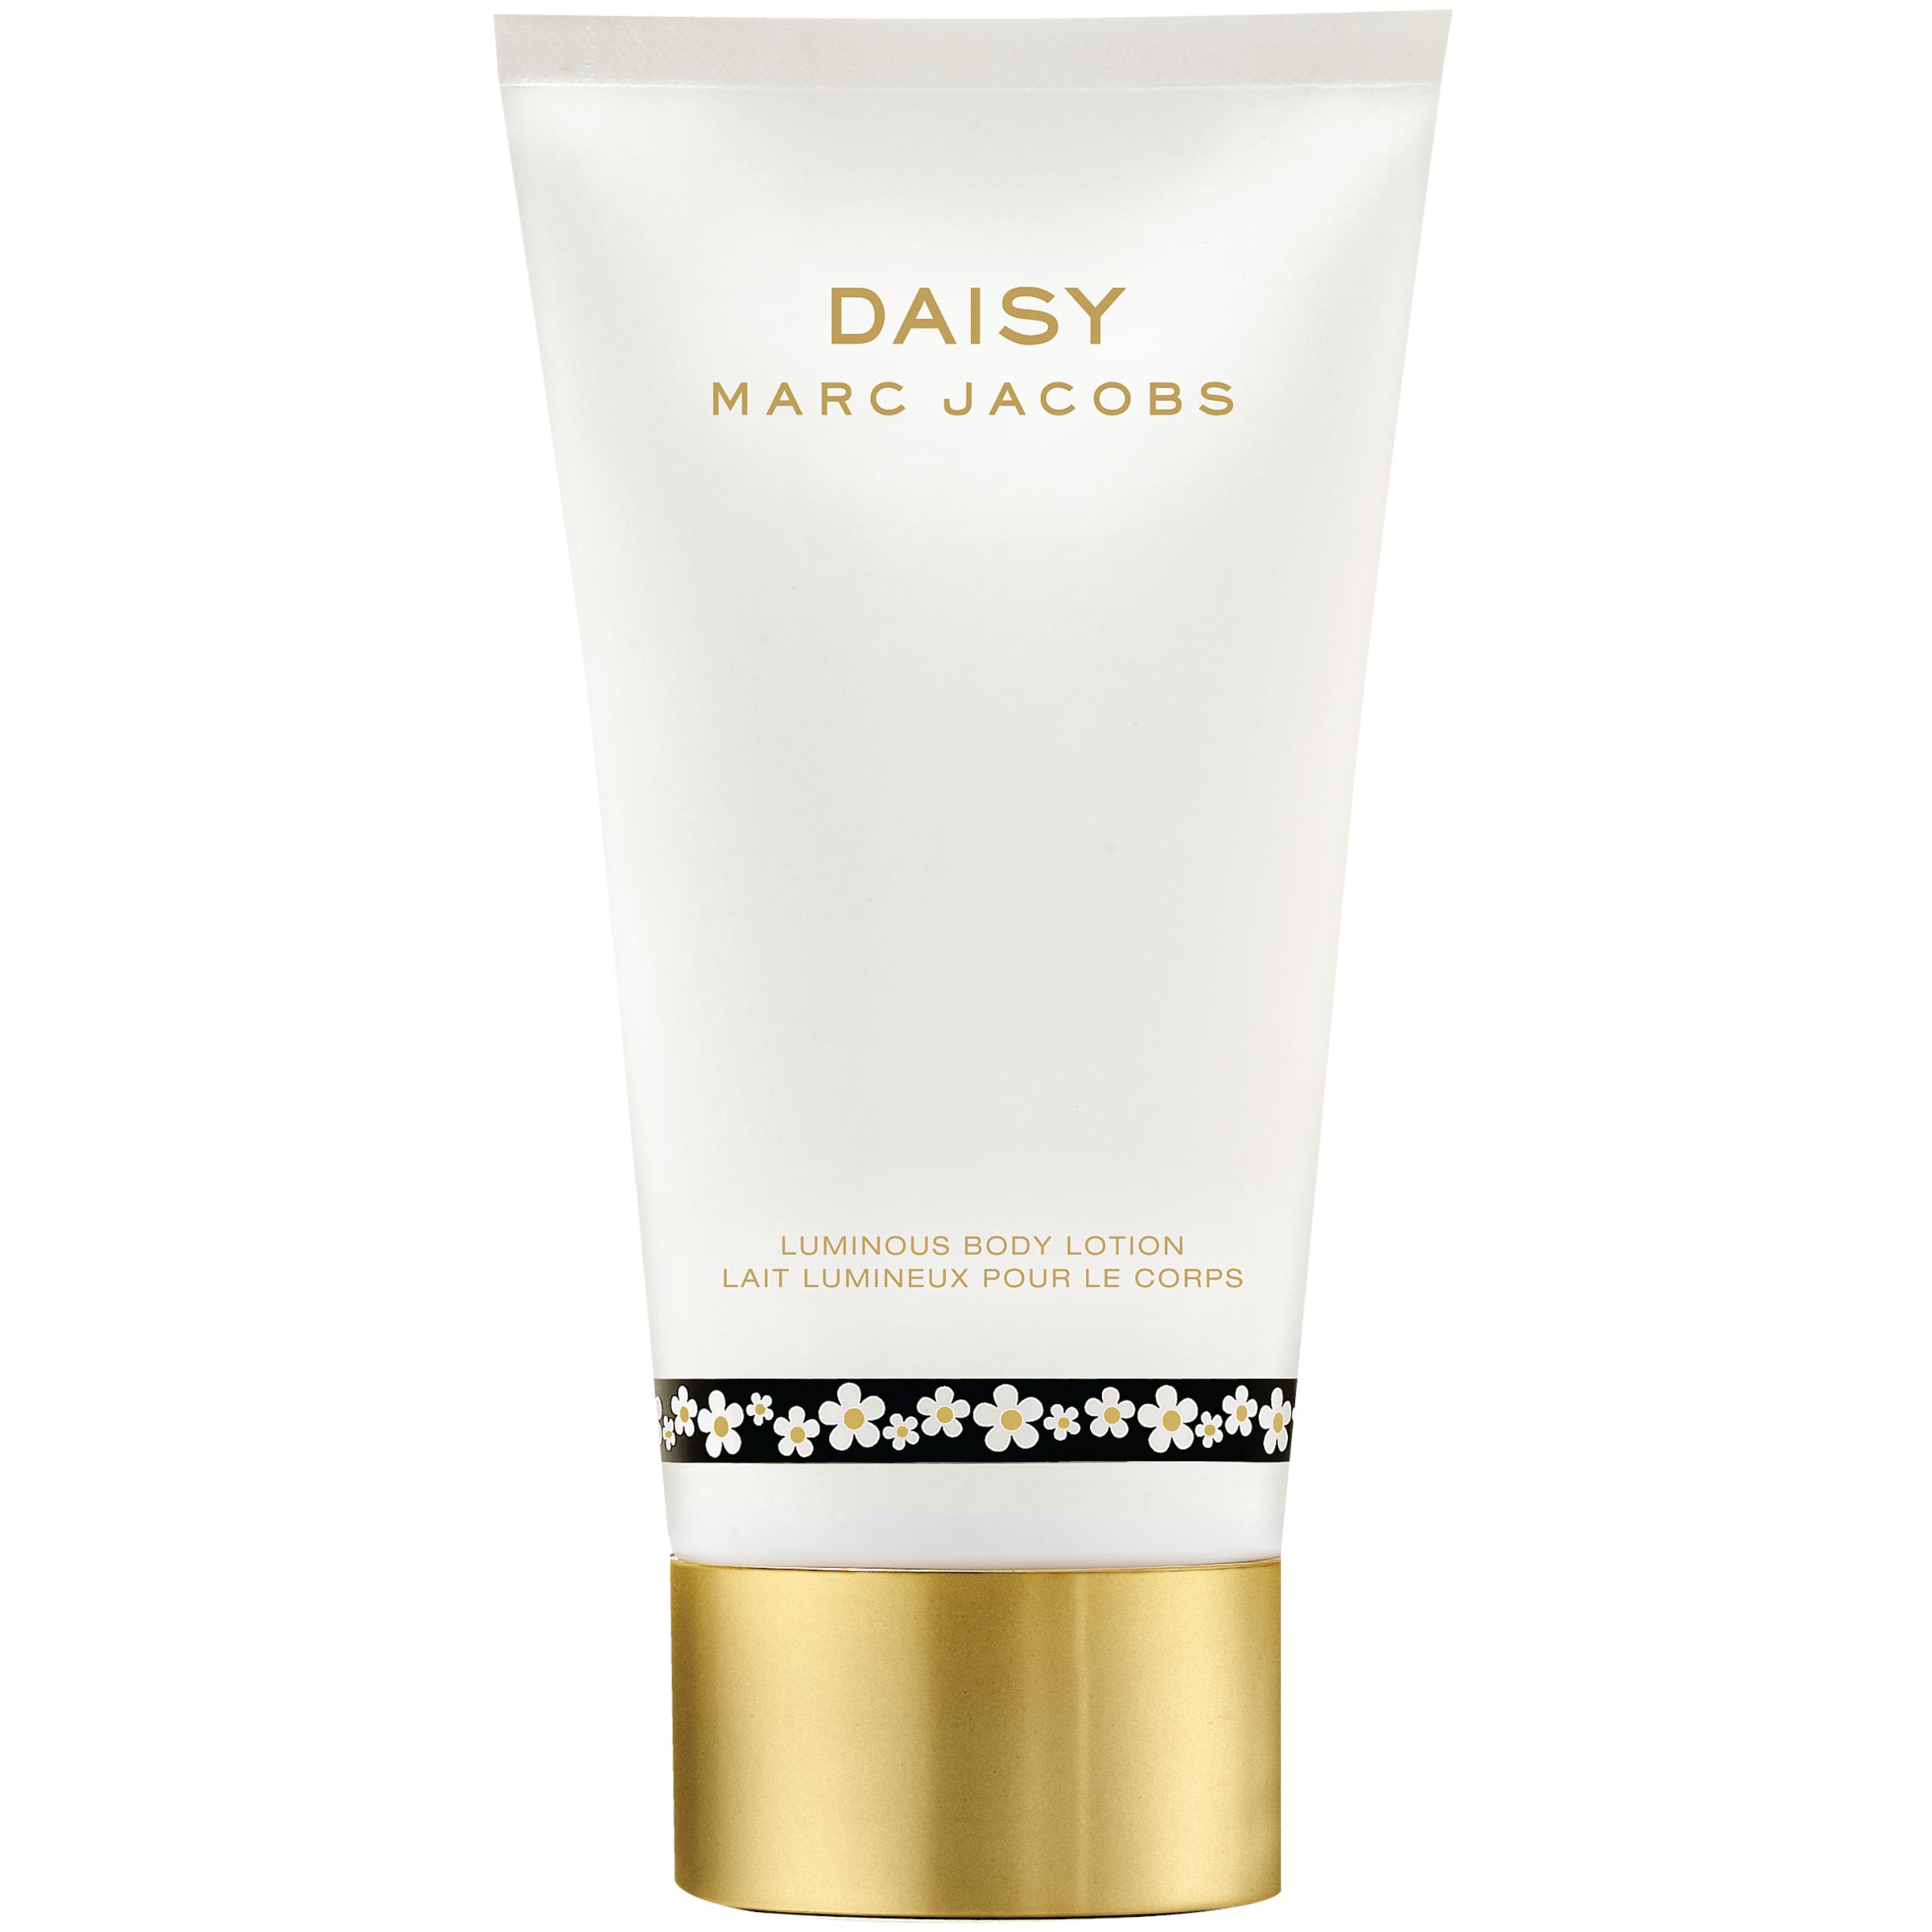 Marc Jacobs Marc Jacobs Daisy Body Lotion, 150ml